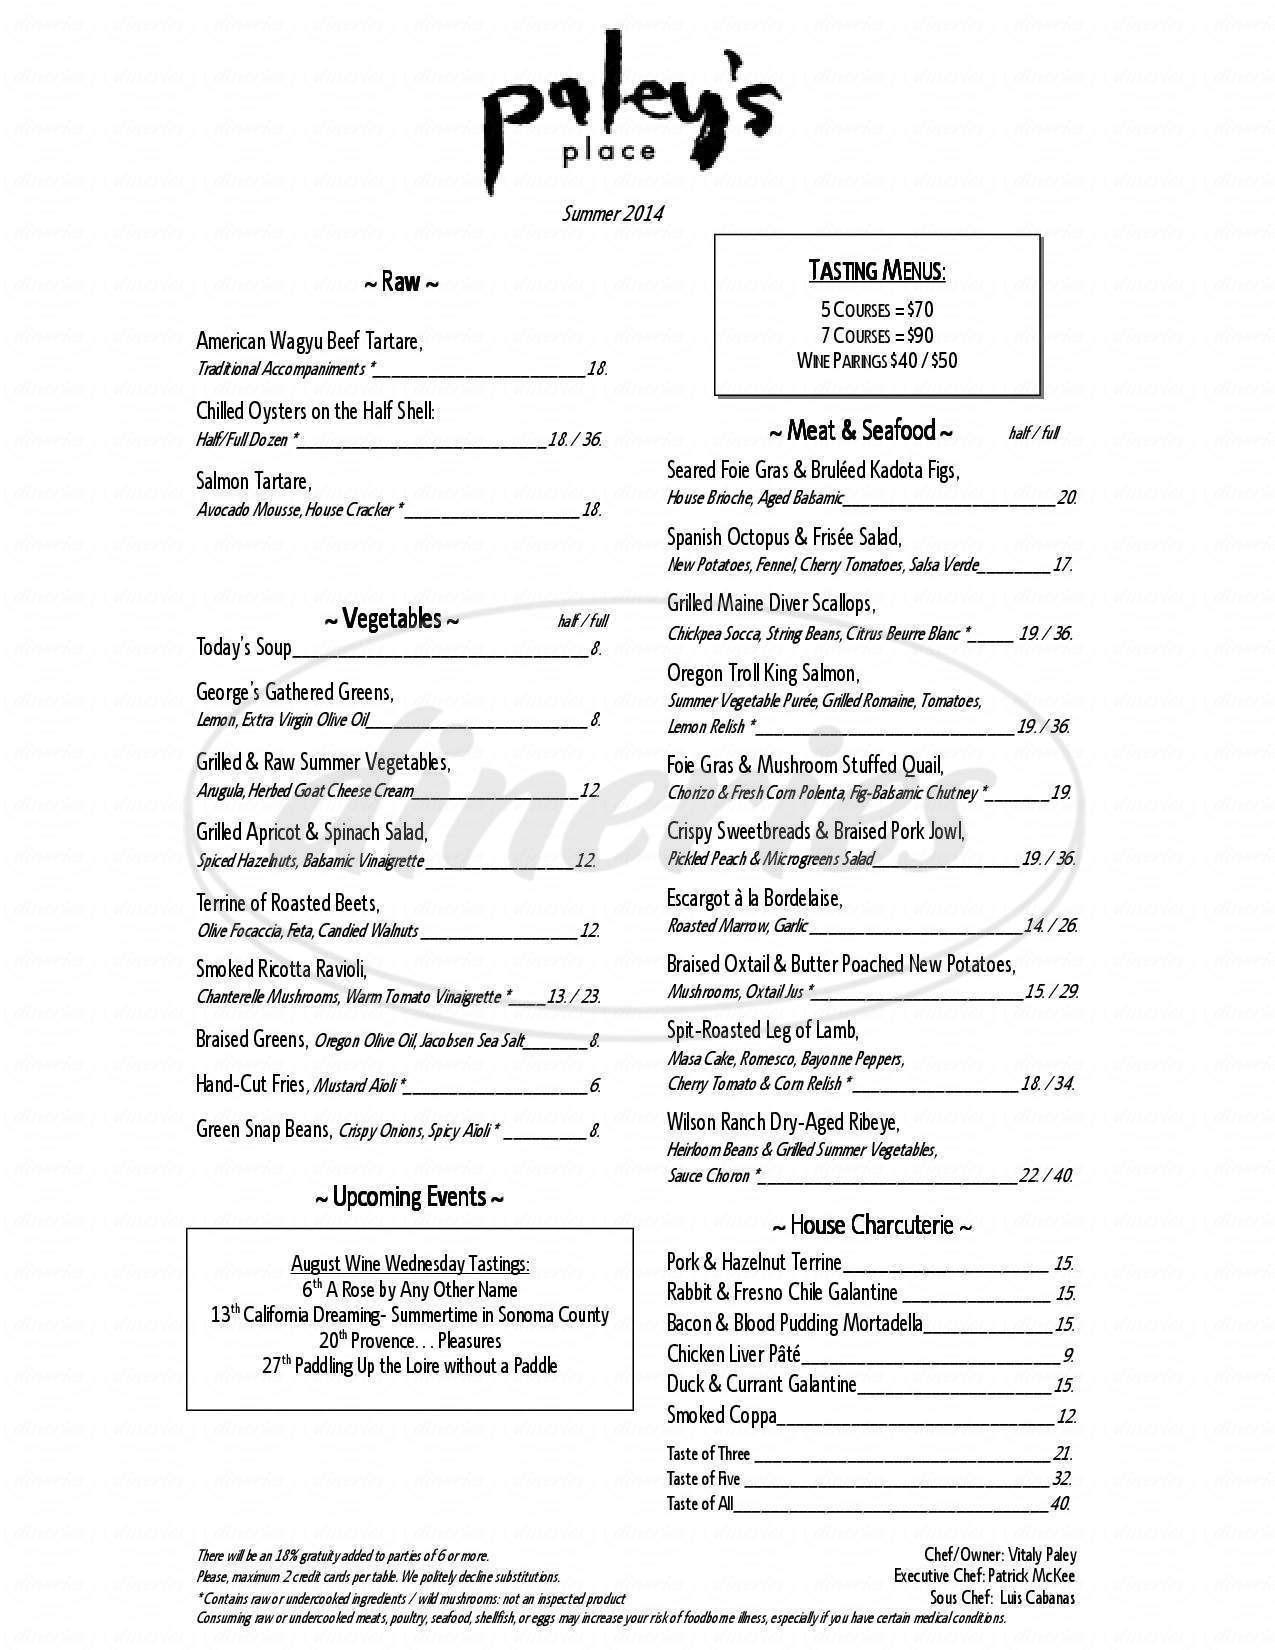 menu for Paley's Place